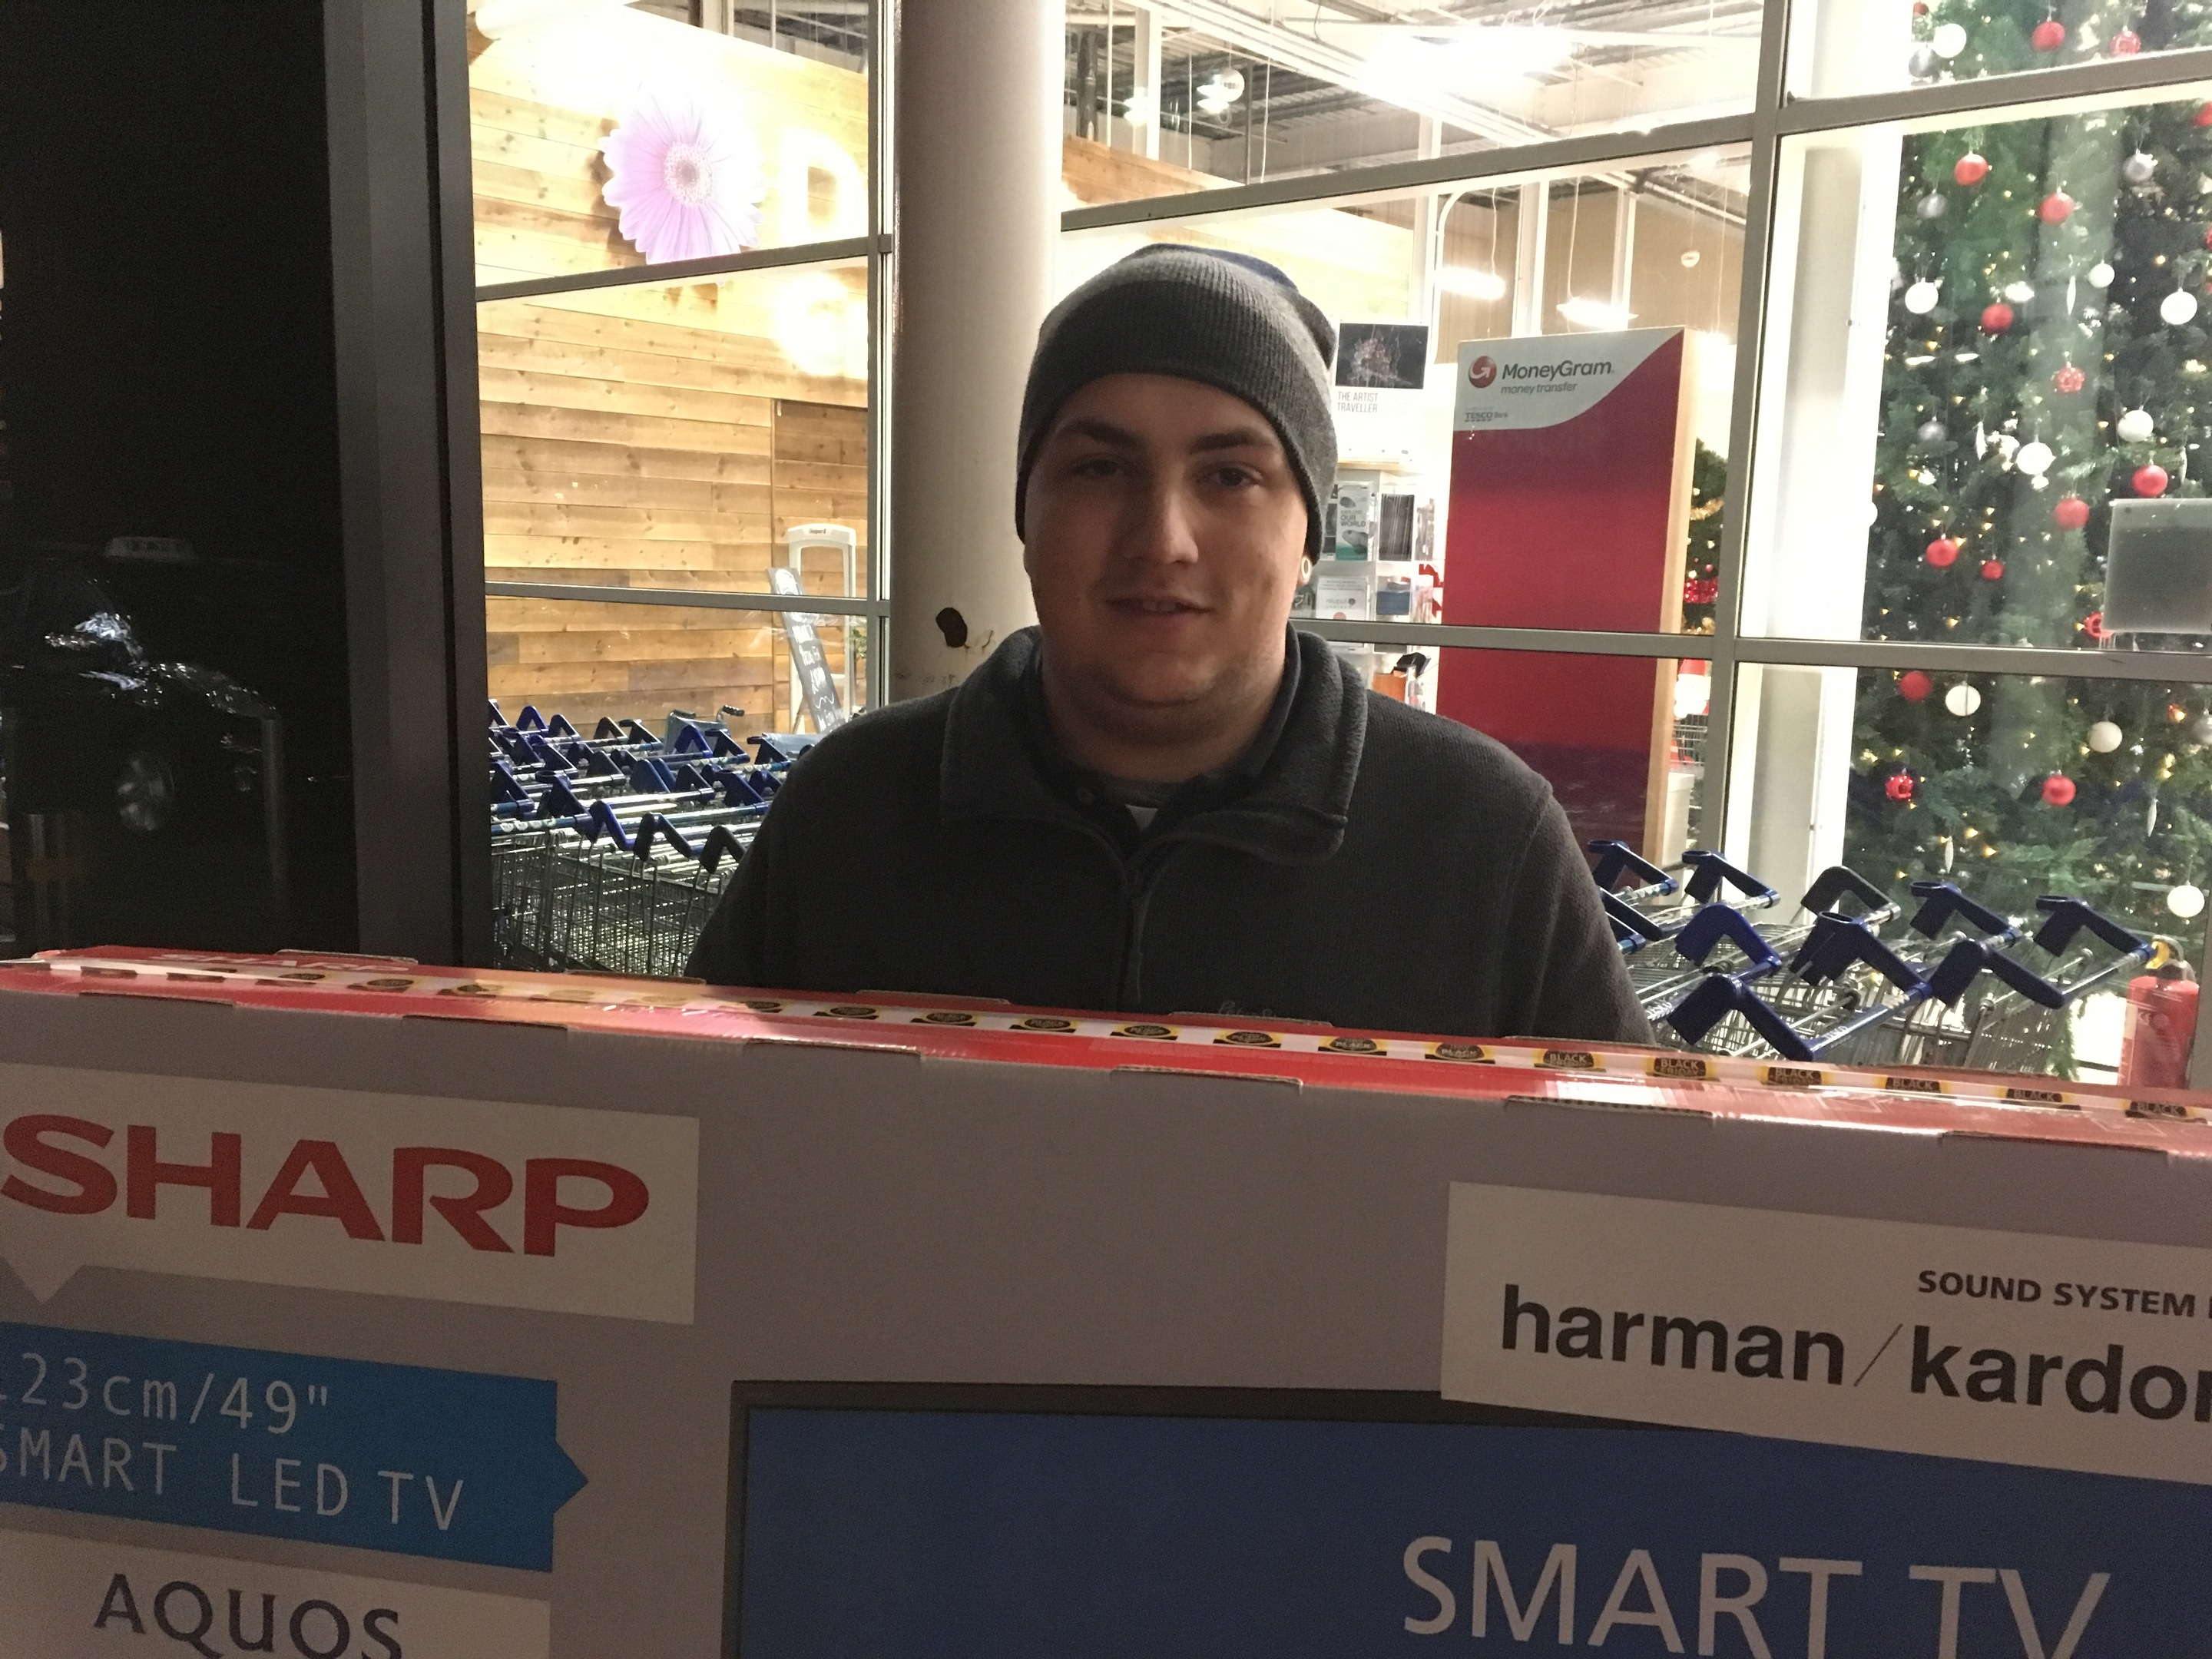 The early bird catches the worm - Kieran Davidson from Dundee with his Black Friday TV.